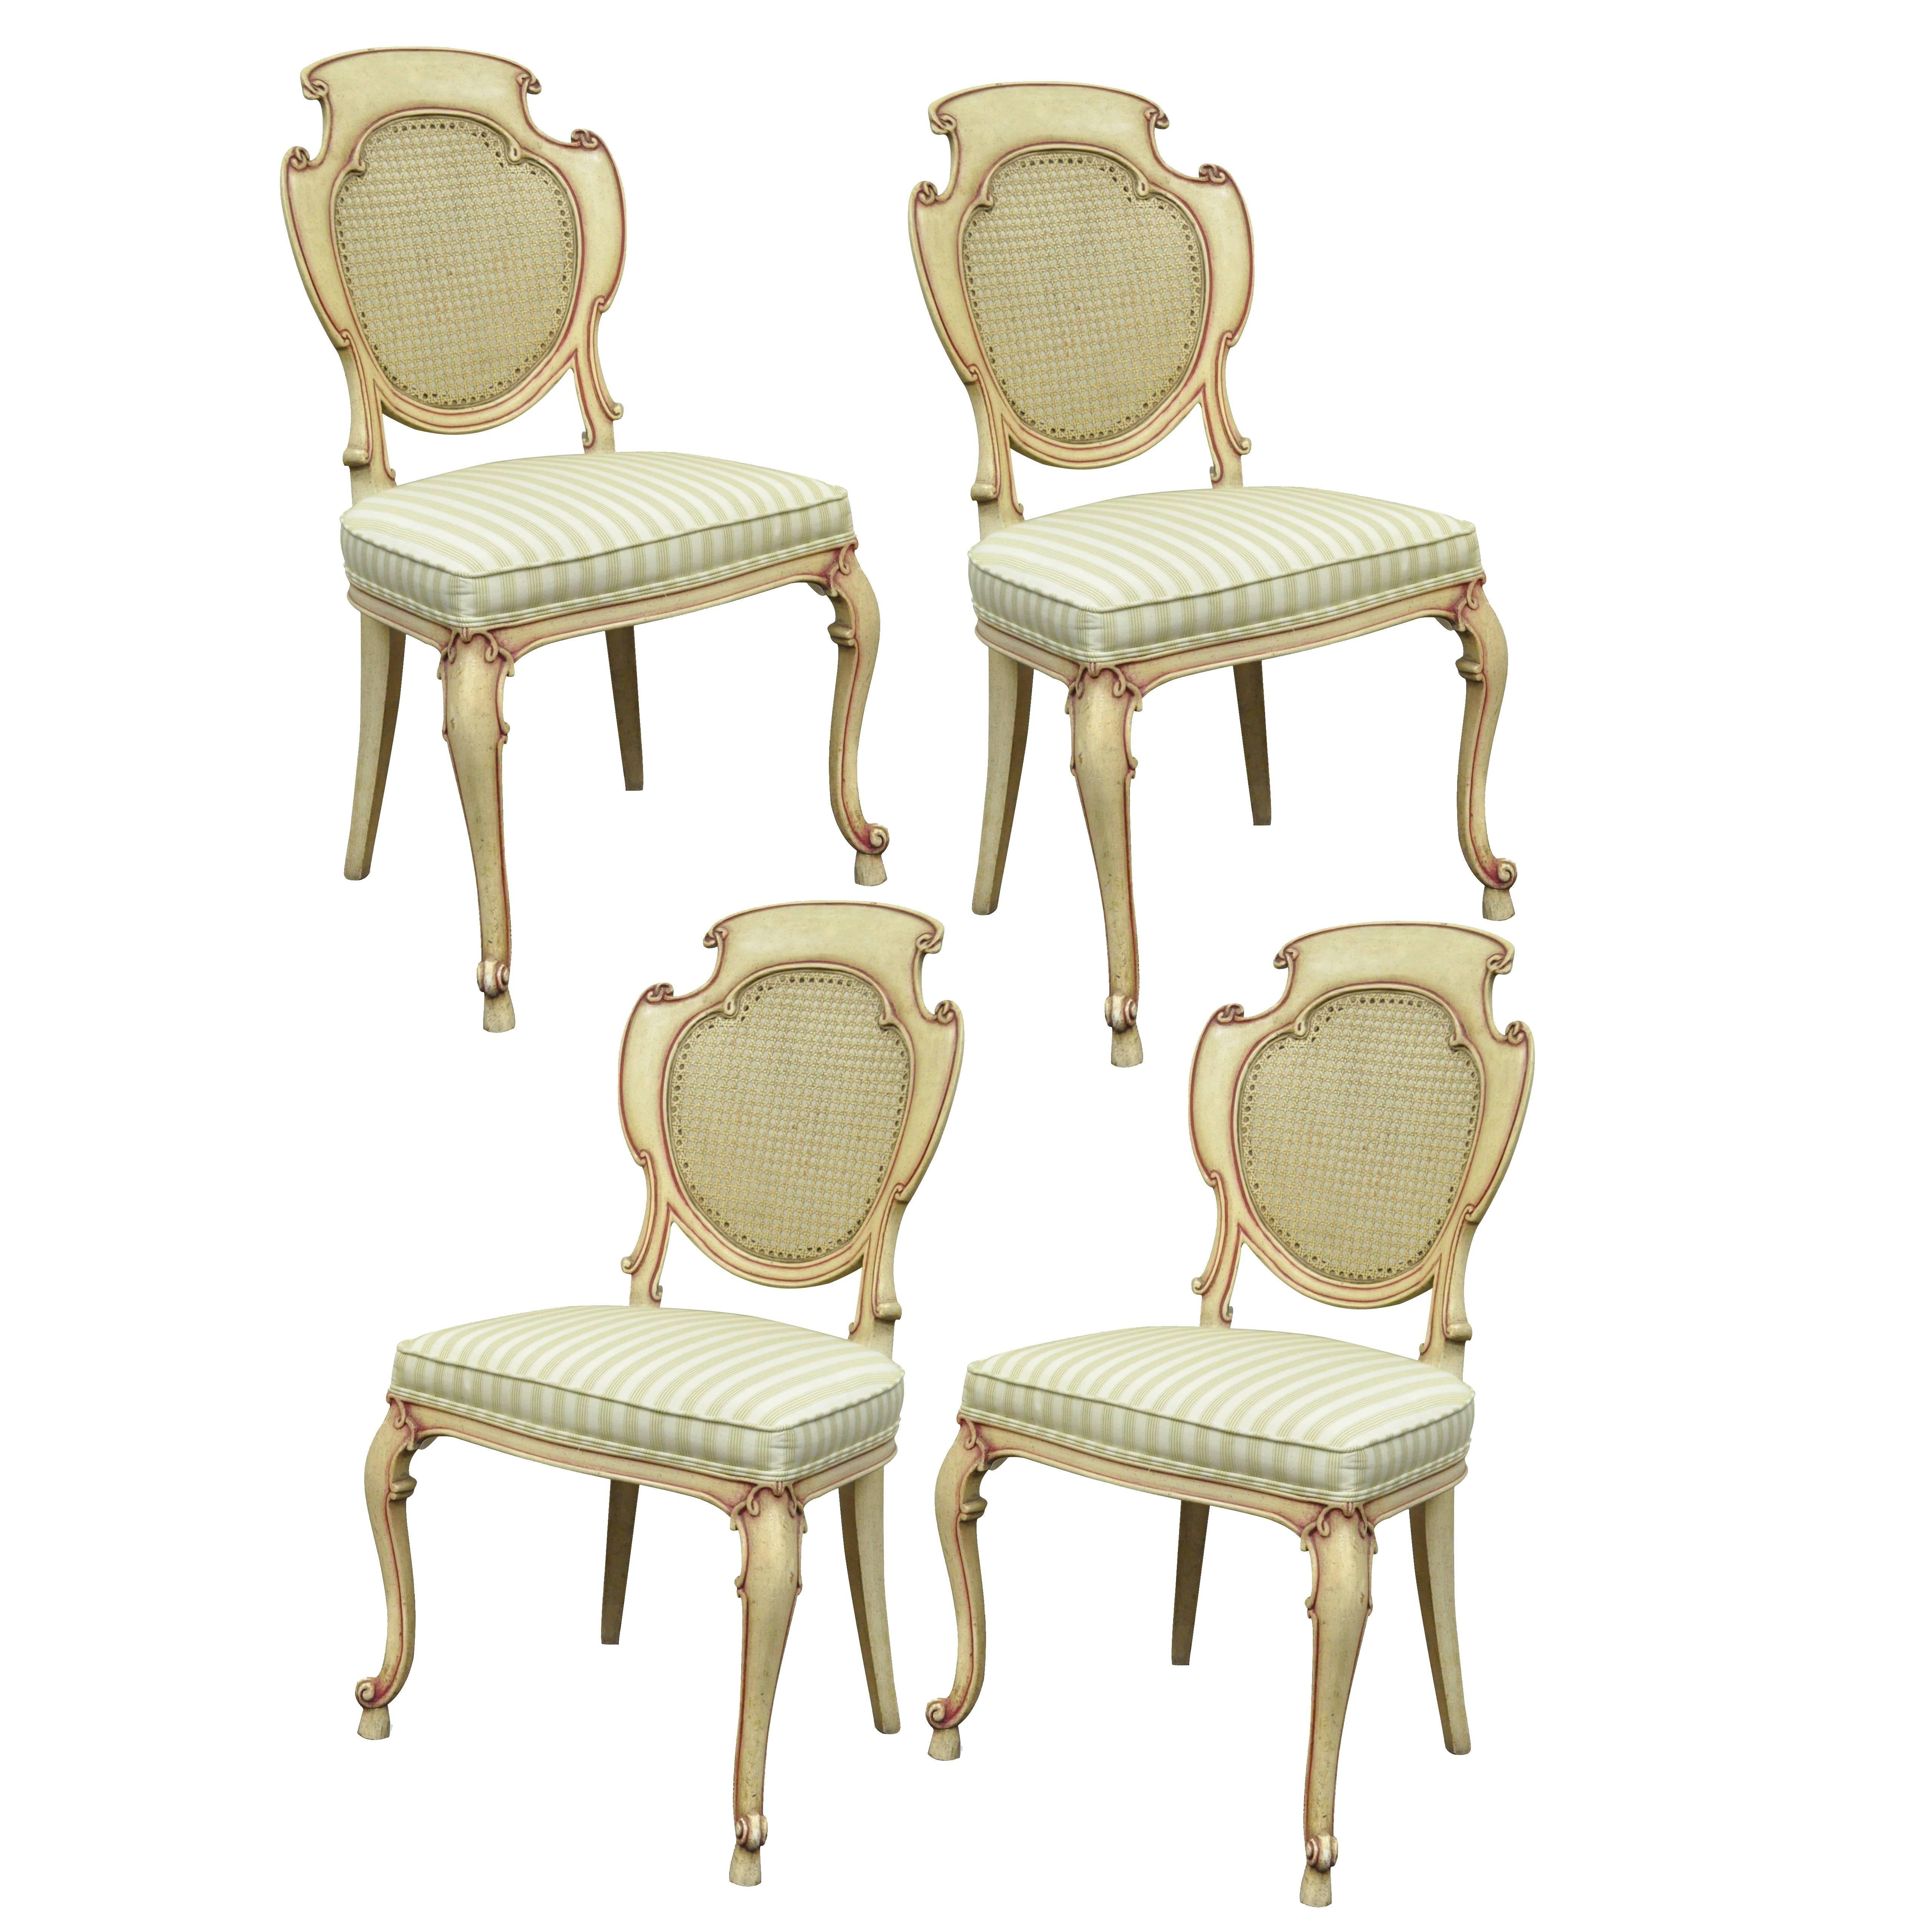 Scroll Back Dining Room Chairs 2 For Sale On 1stdibs